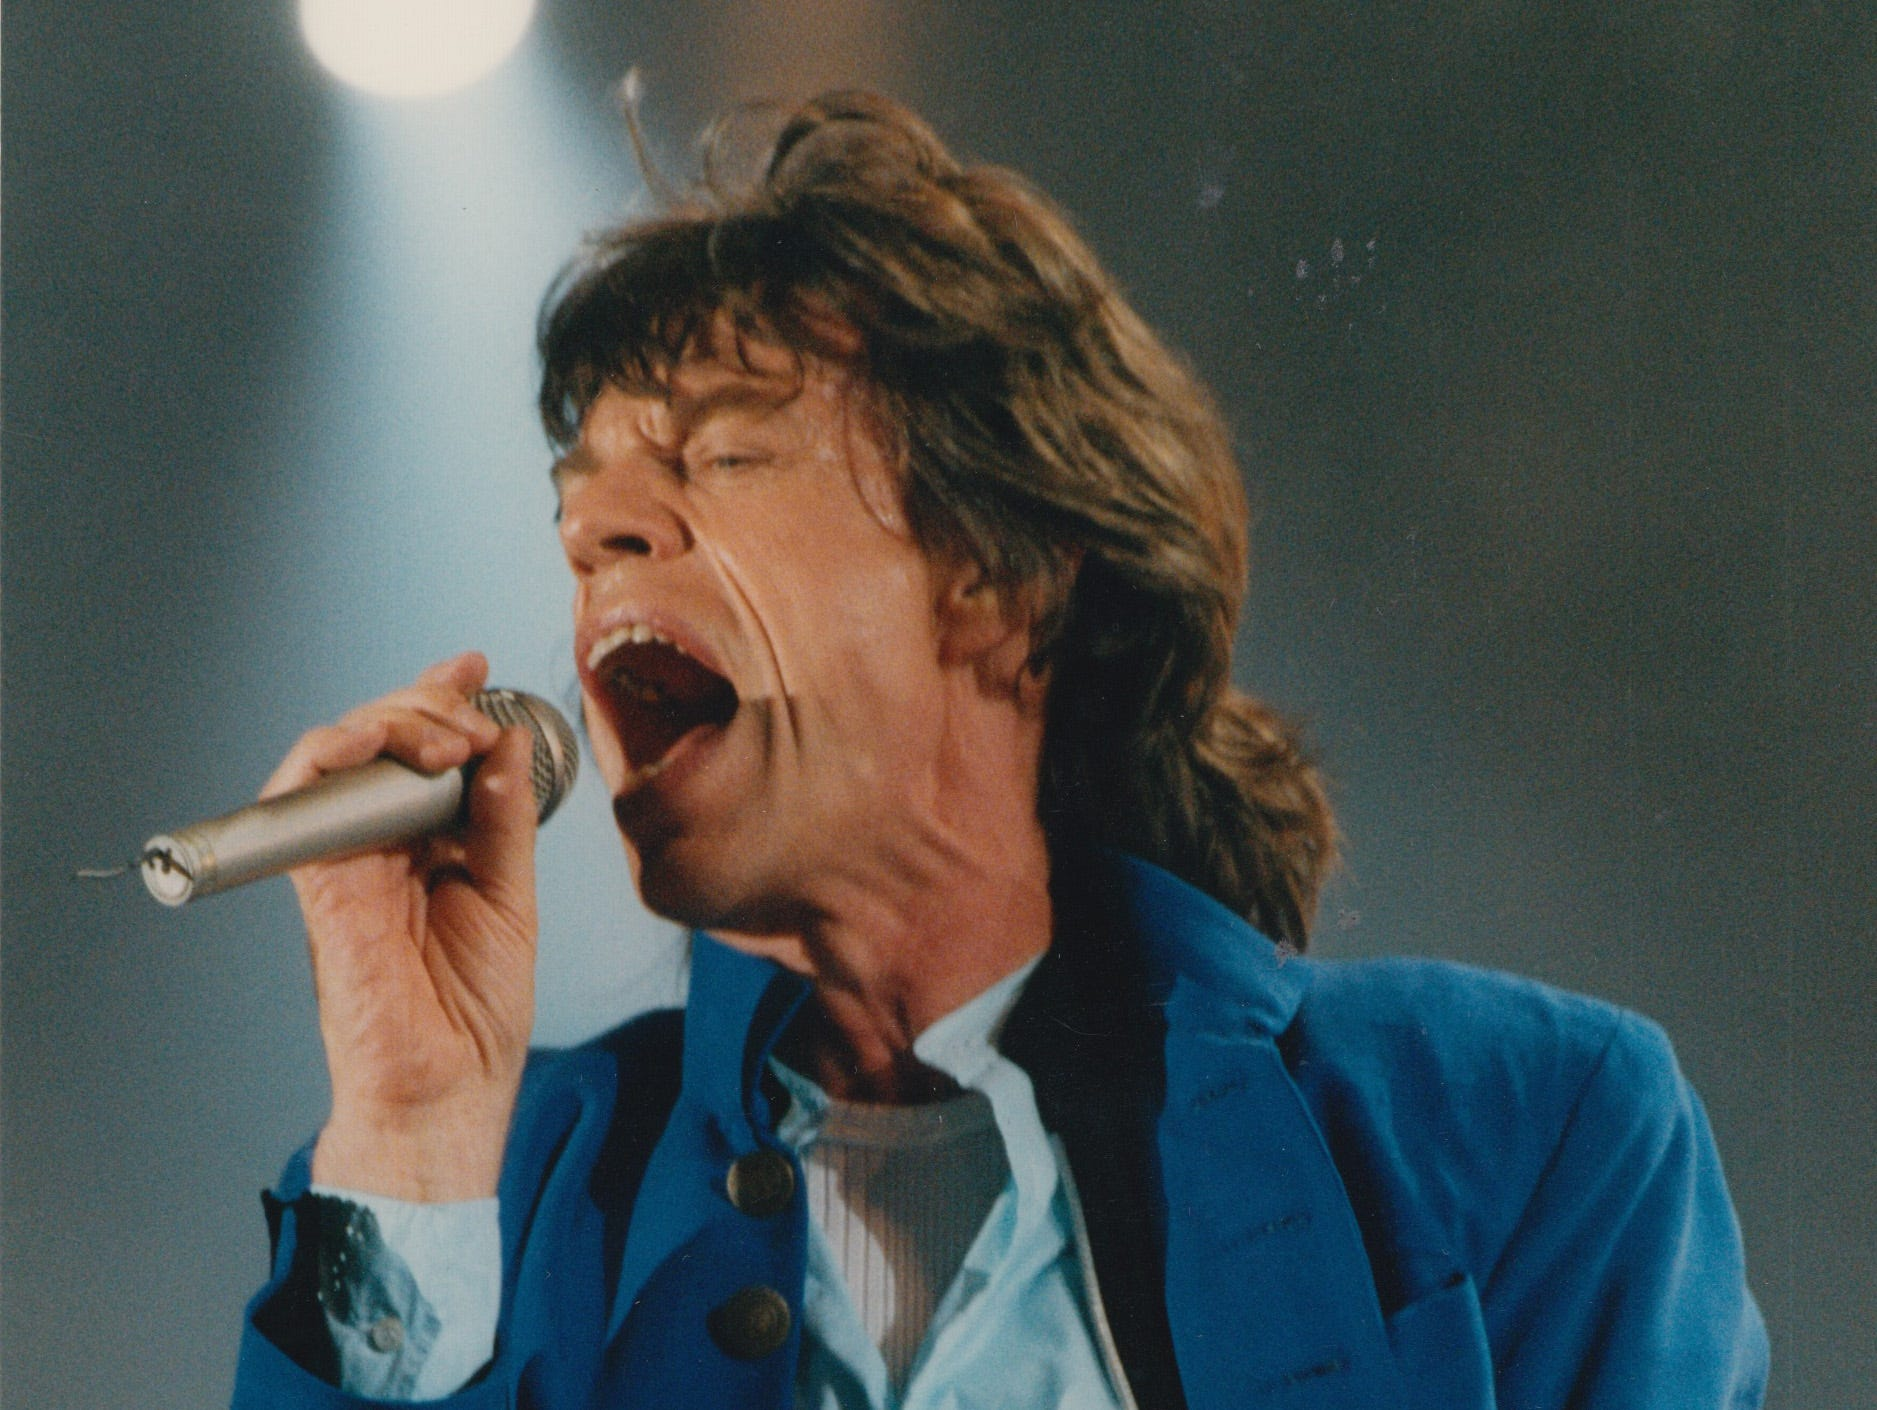 Mick Jagger during the Rolling Stones Voodoo Lounge tour stop at the RCA Dome in 1994.